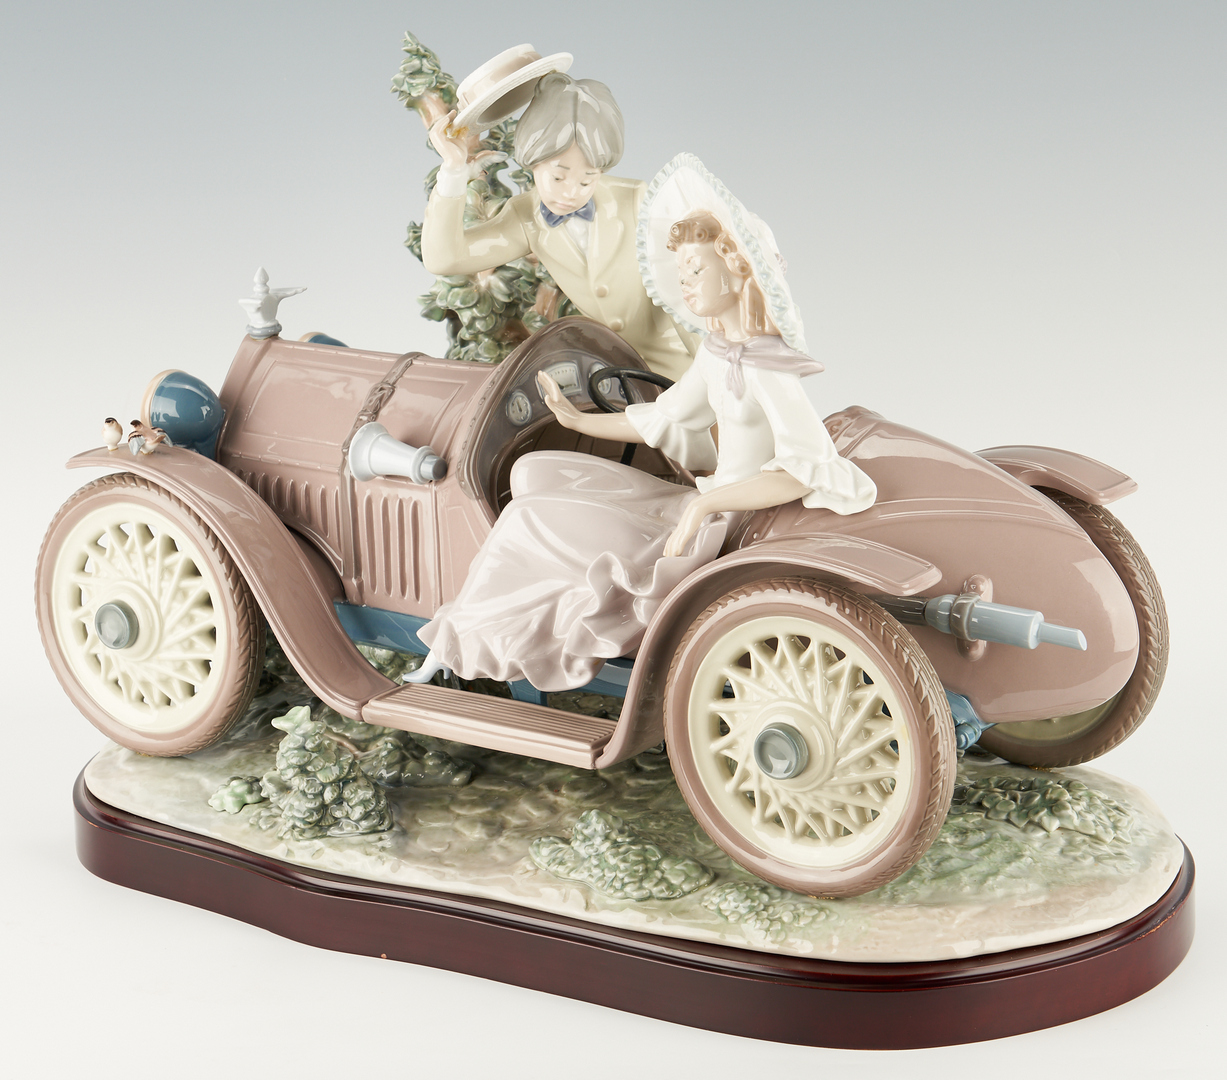 Lot 952: Limited Edition Lladro Porcelain Figurine Group, First Date